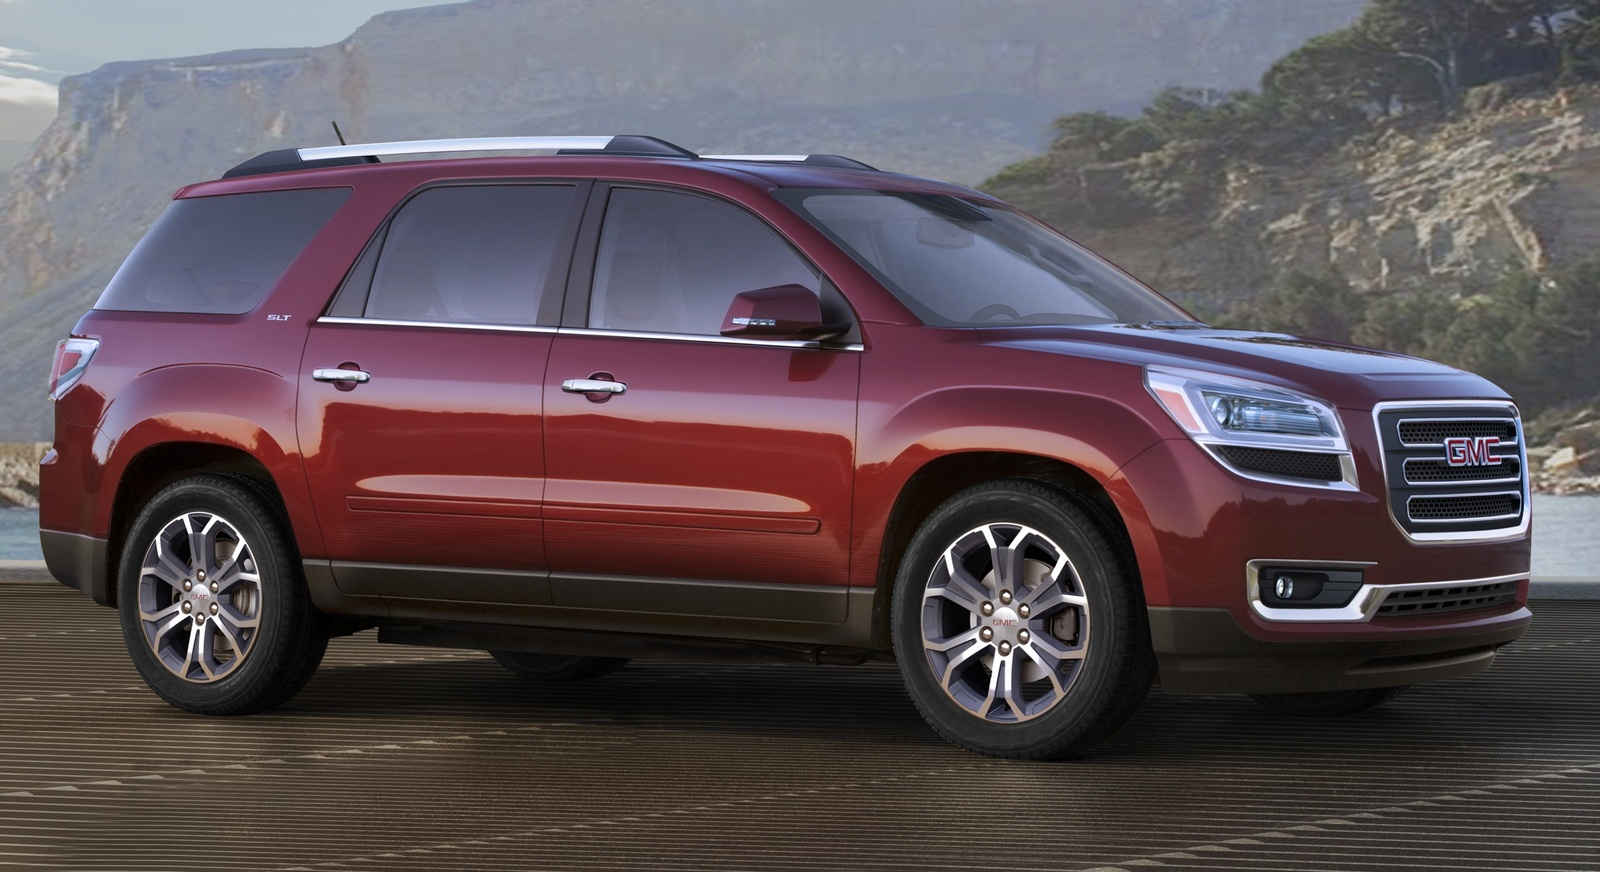 2015 Gmc Acadia Information And Photos Zombiedrive Auto Wiring Diagrams 2